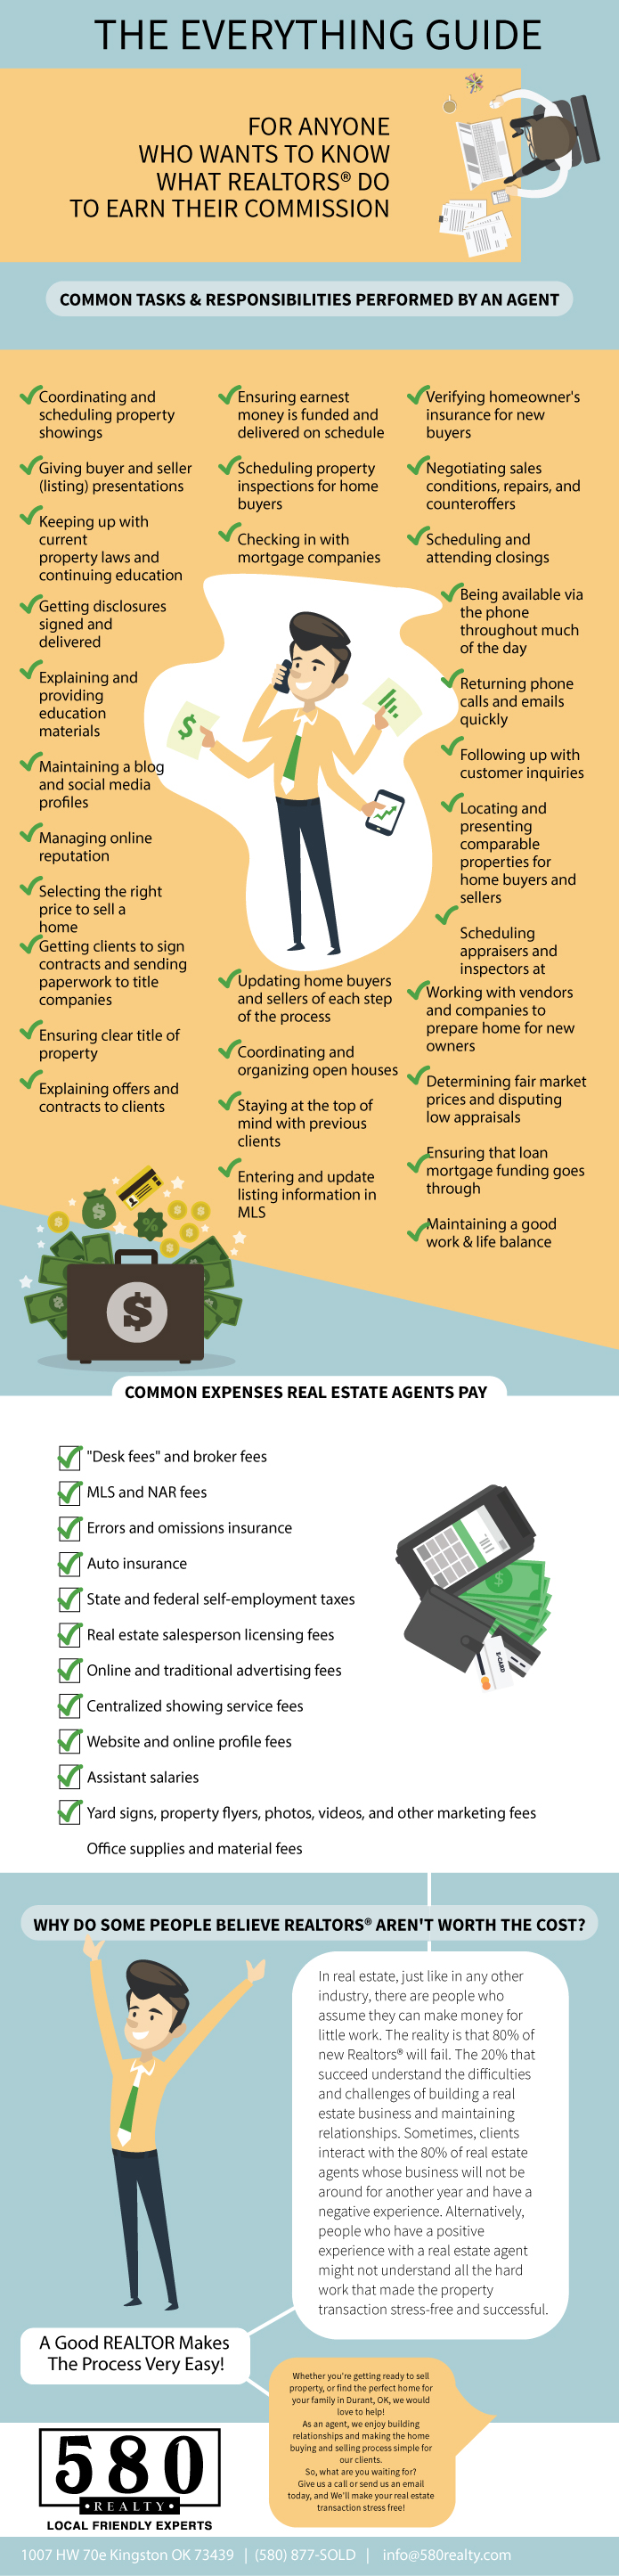 Realtor Commission Infographic